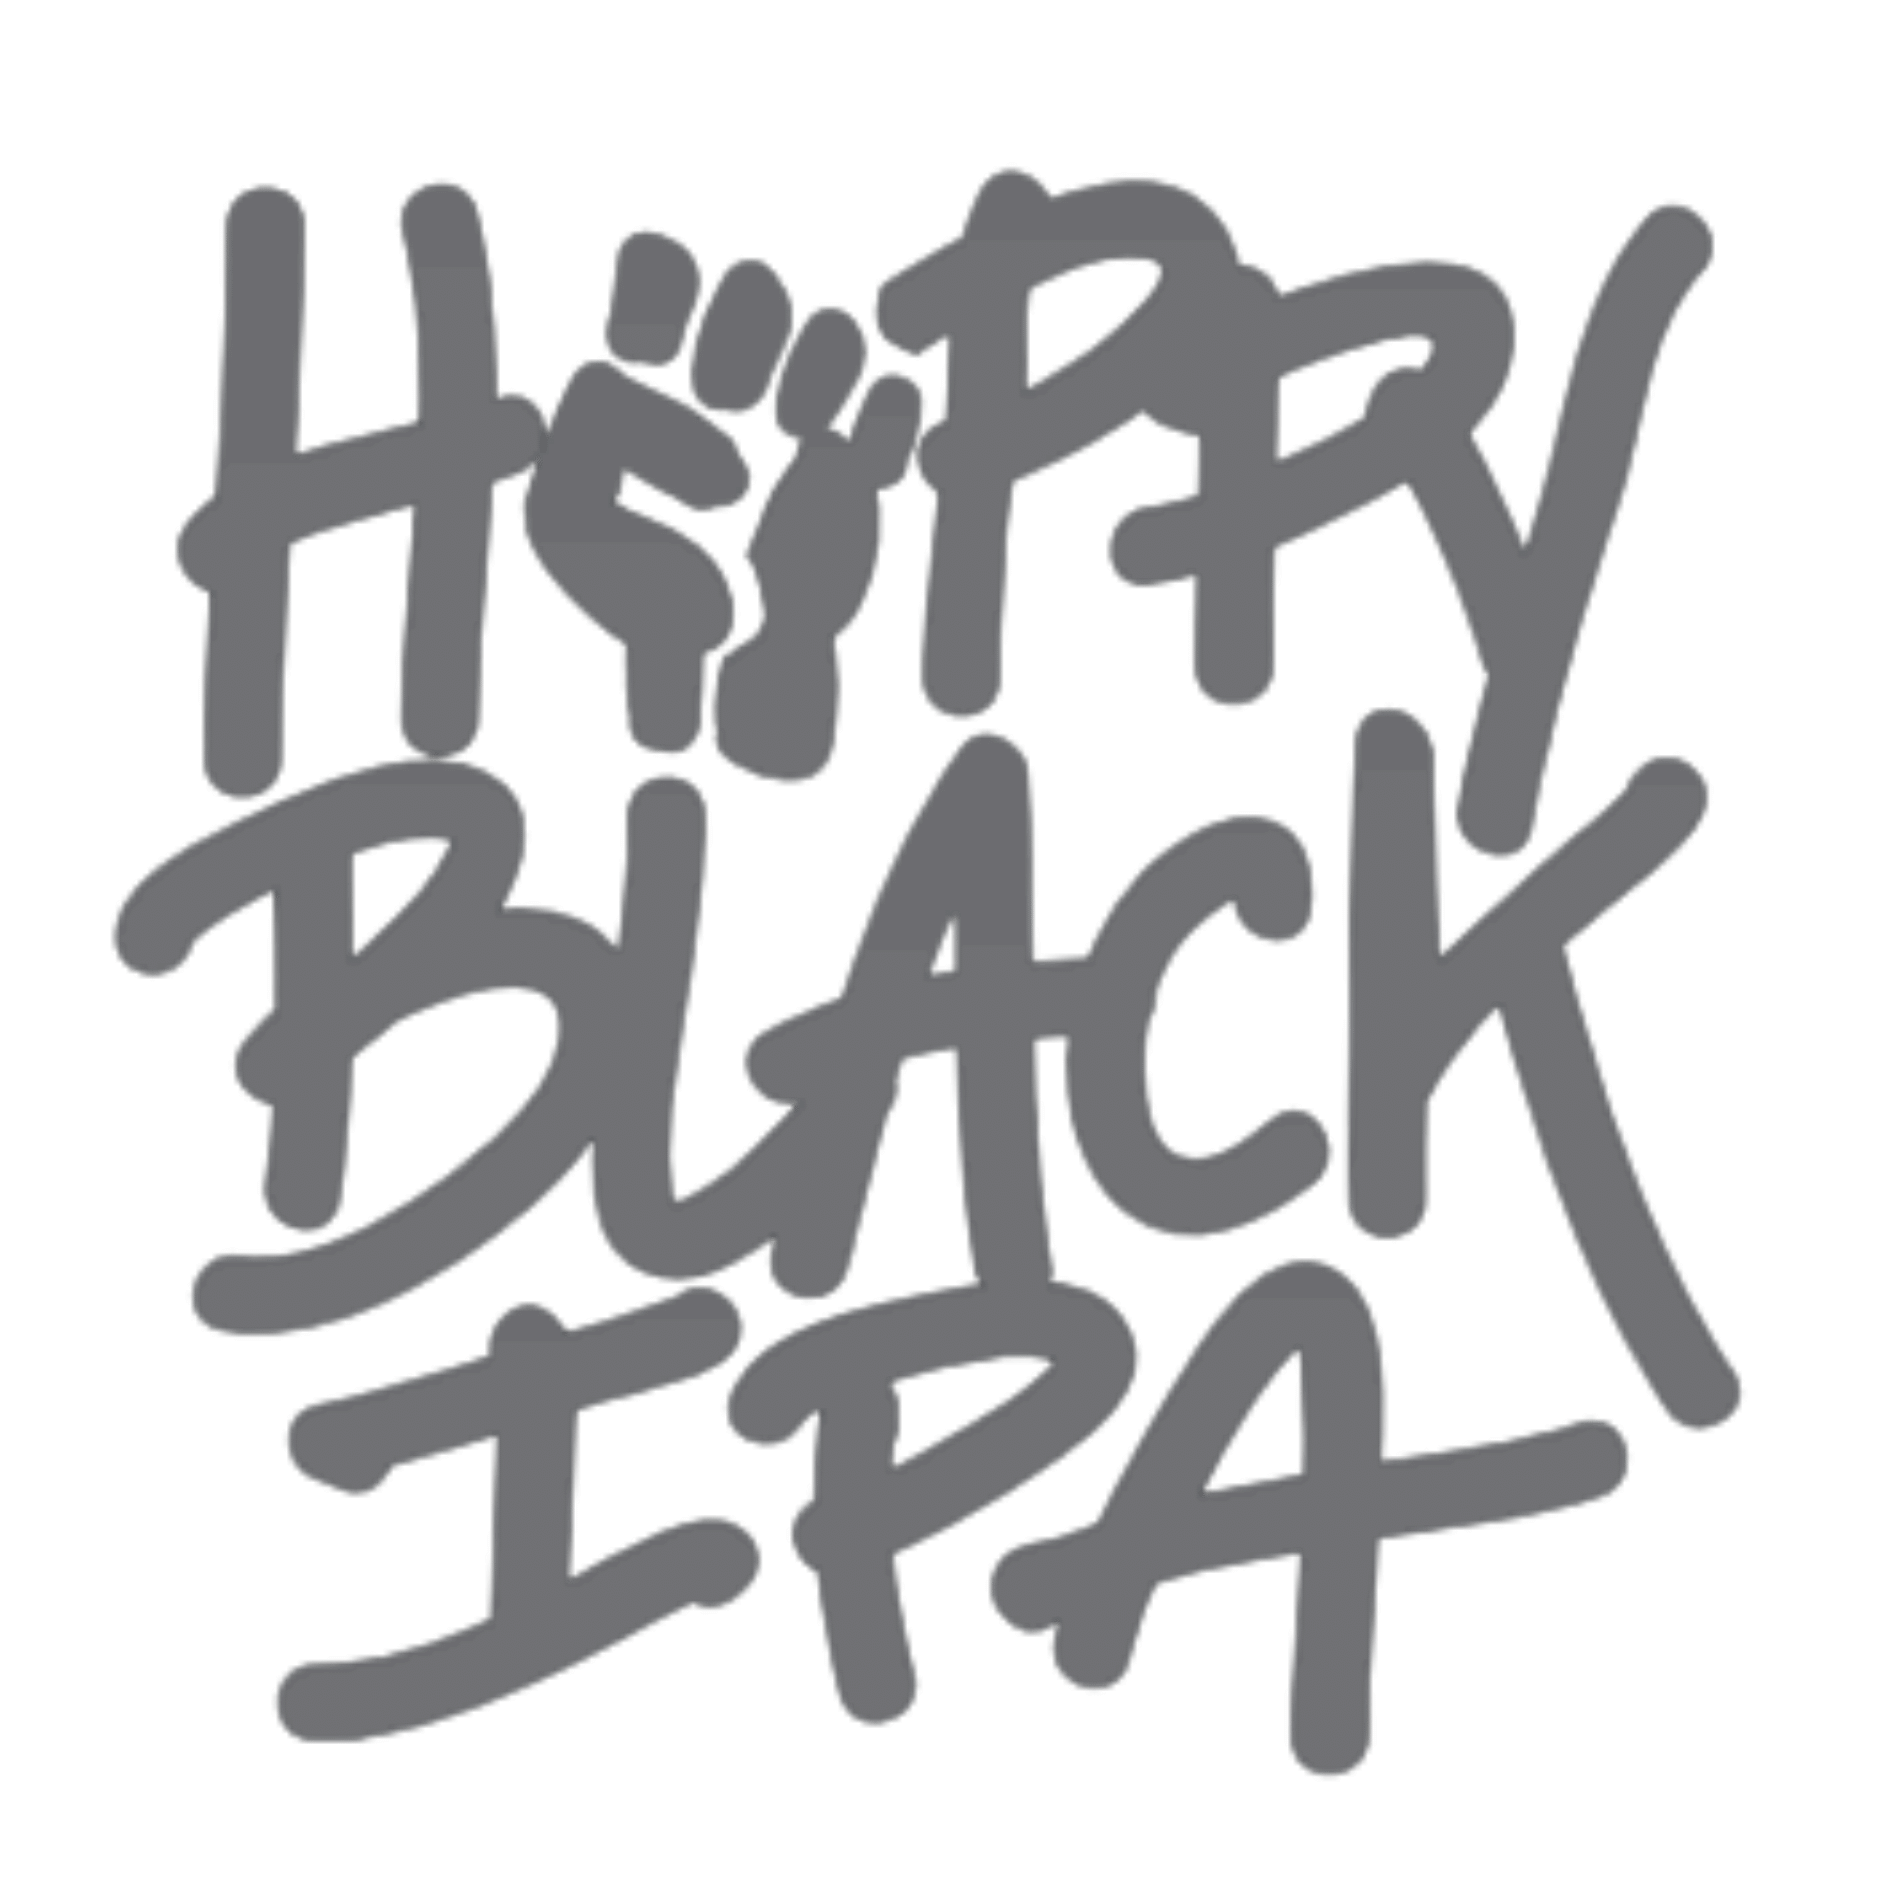 Hop For fun - Hoppy Black Ipa